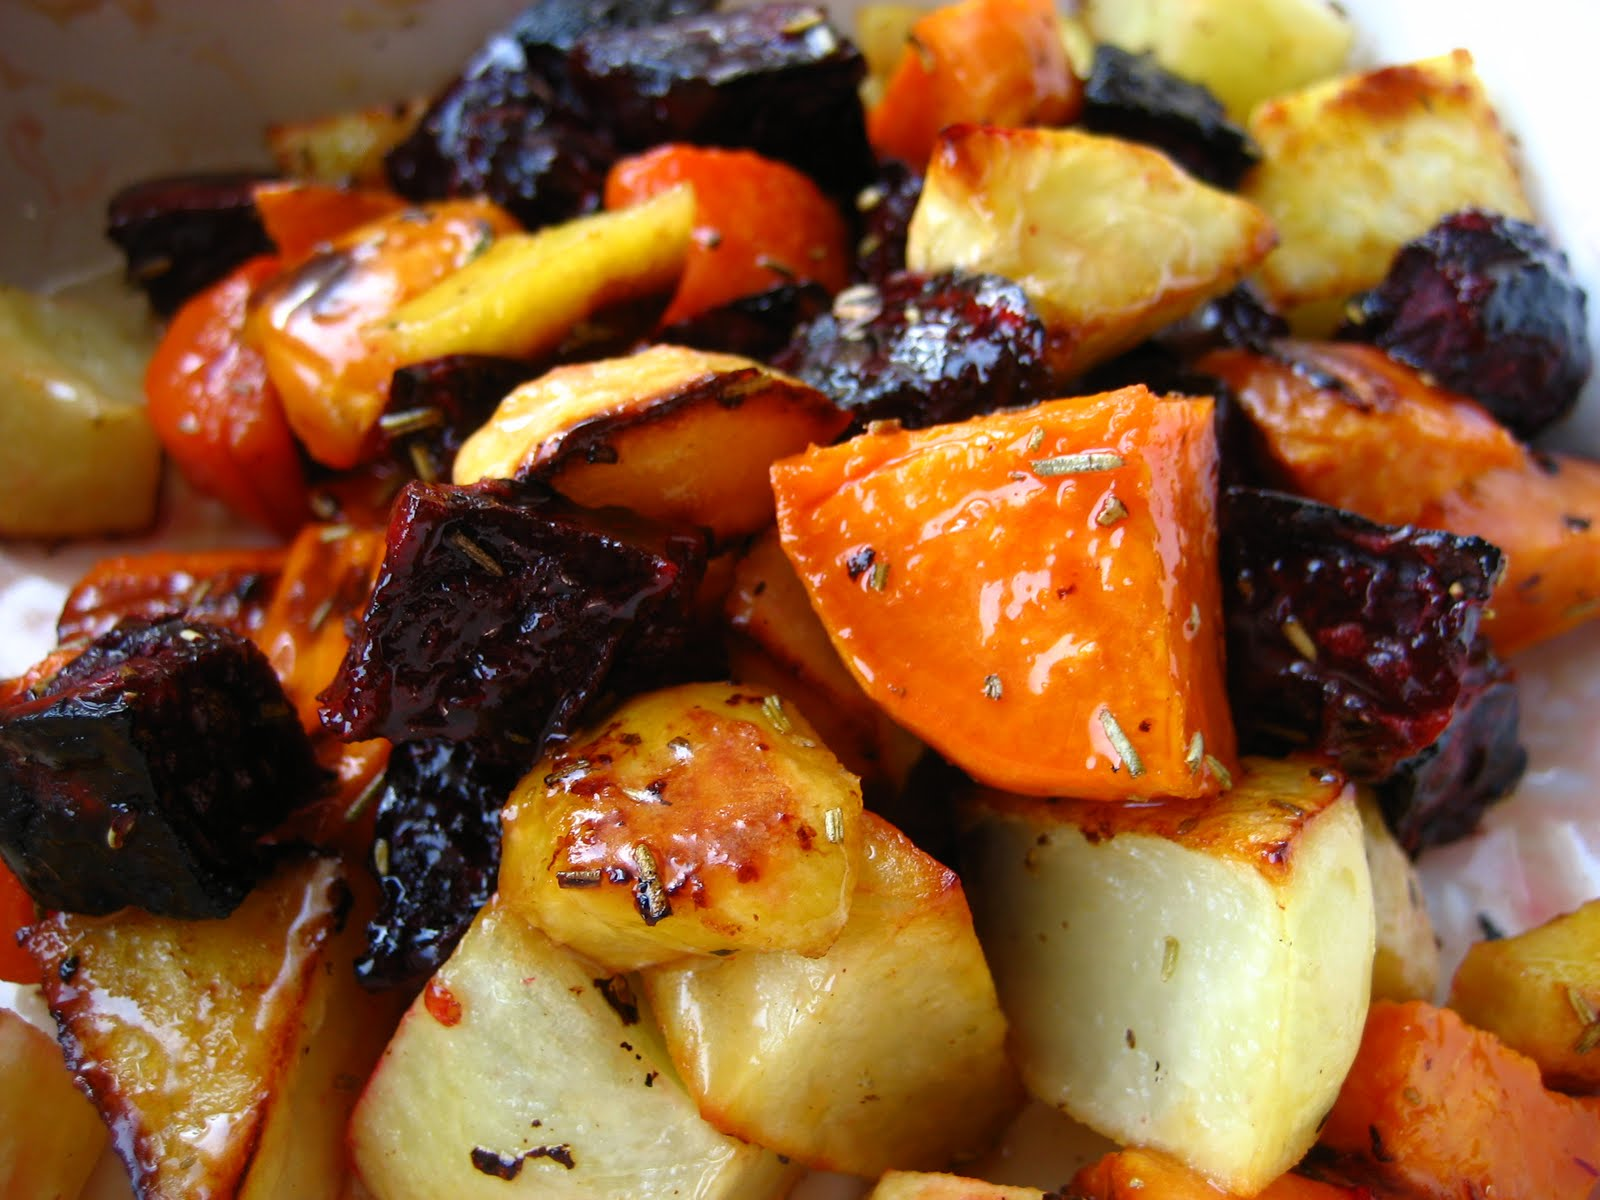 ... Cooking In Montana: Roasted Root Vegetables with Orange Maple Glaze